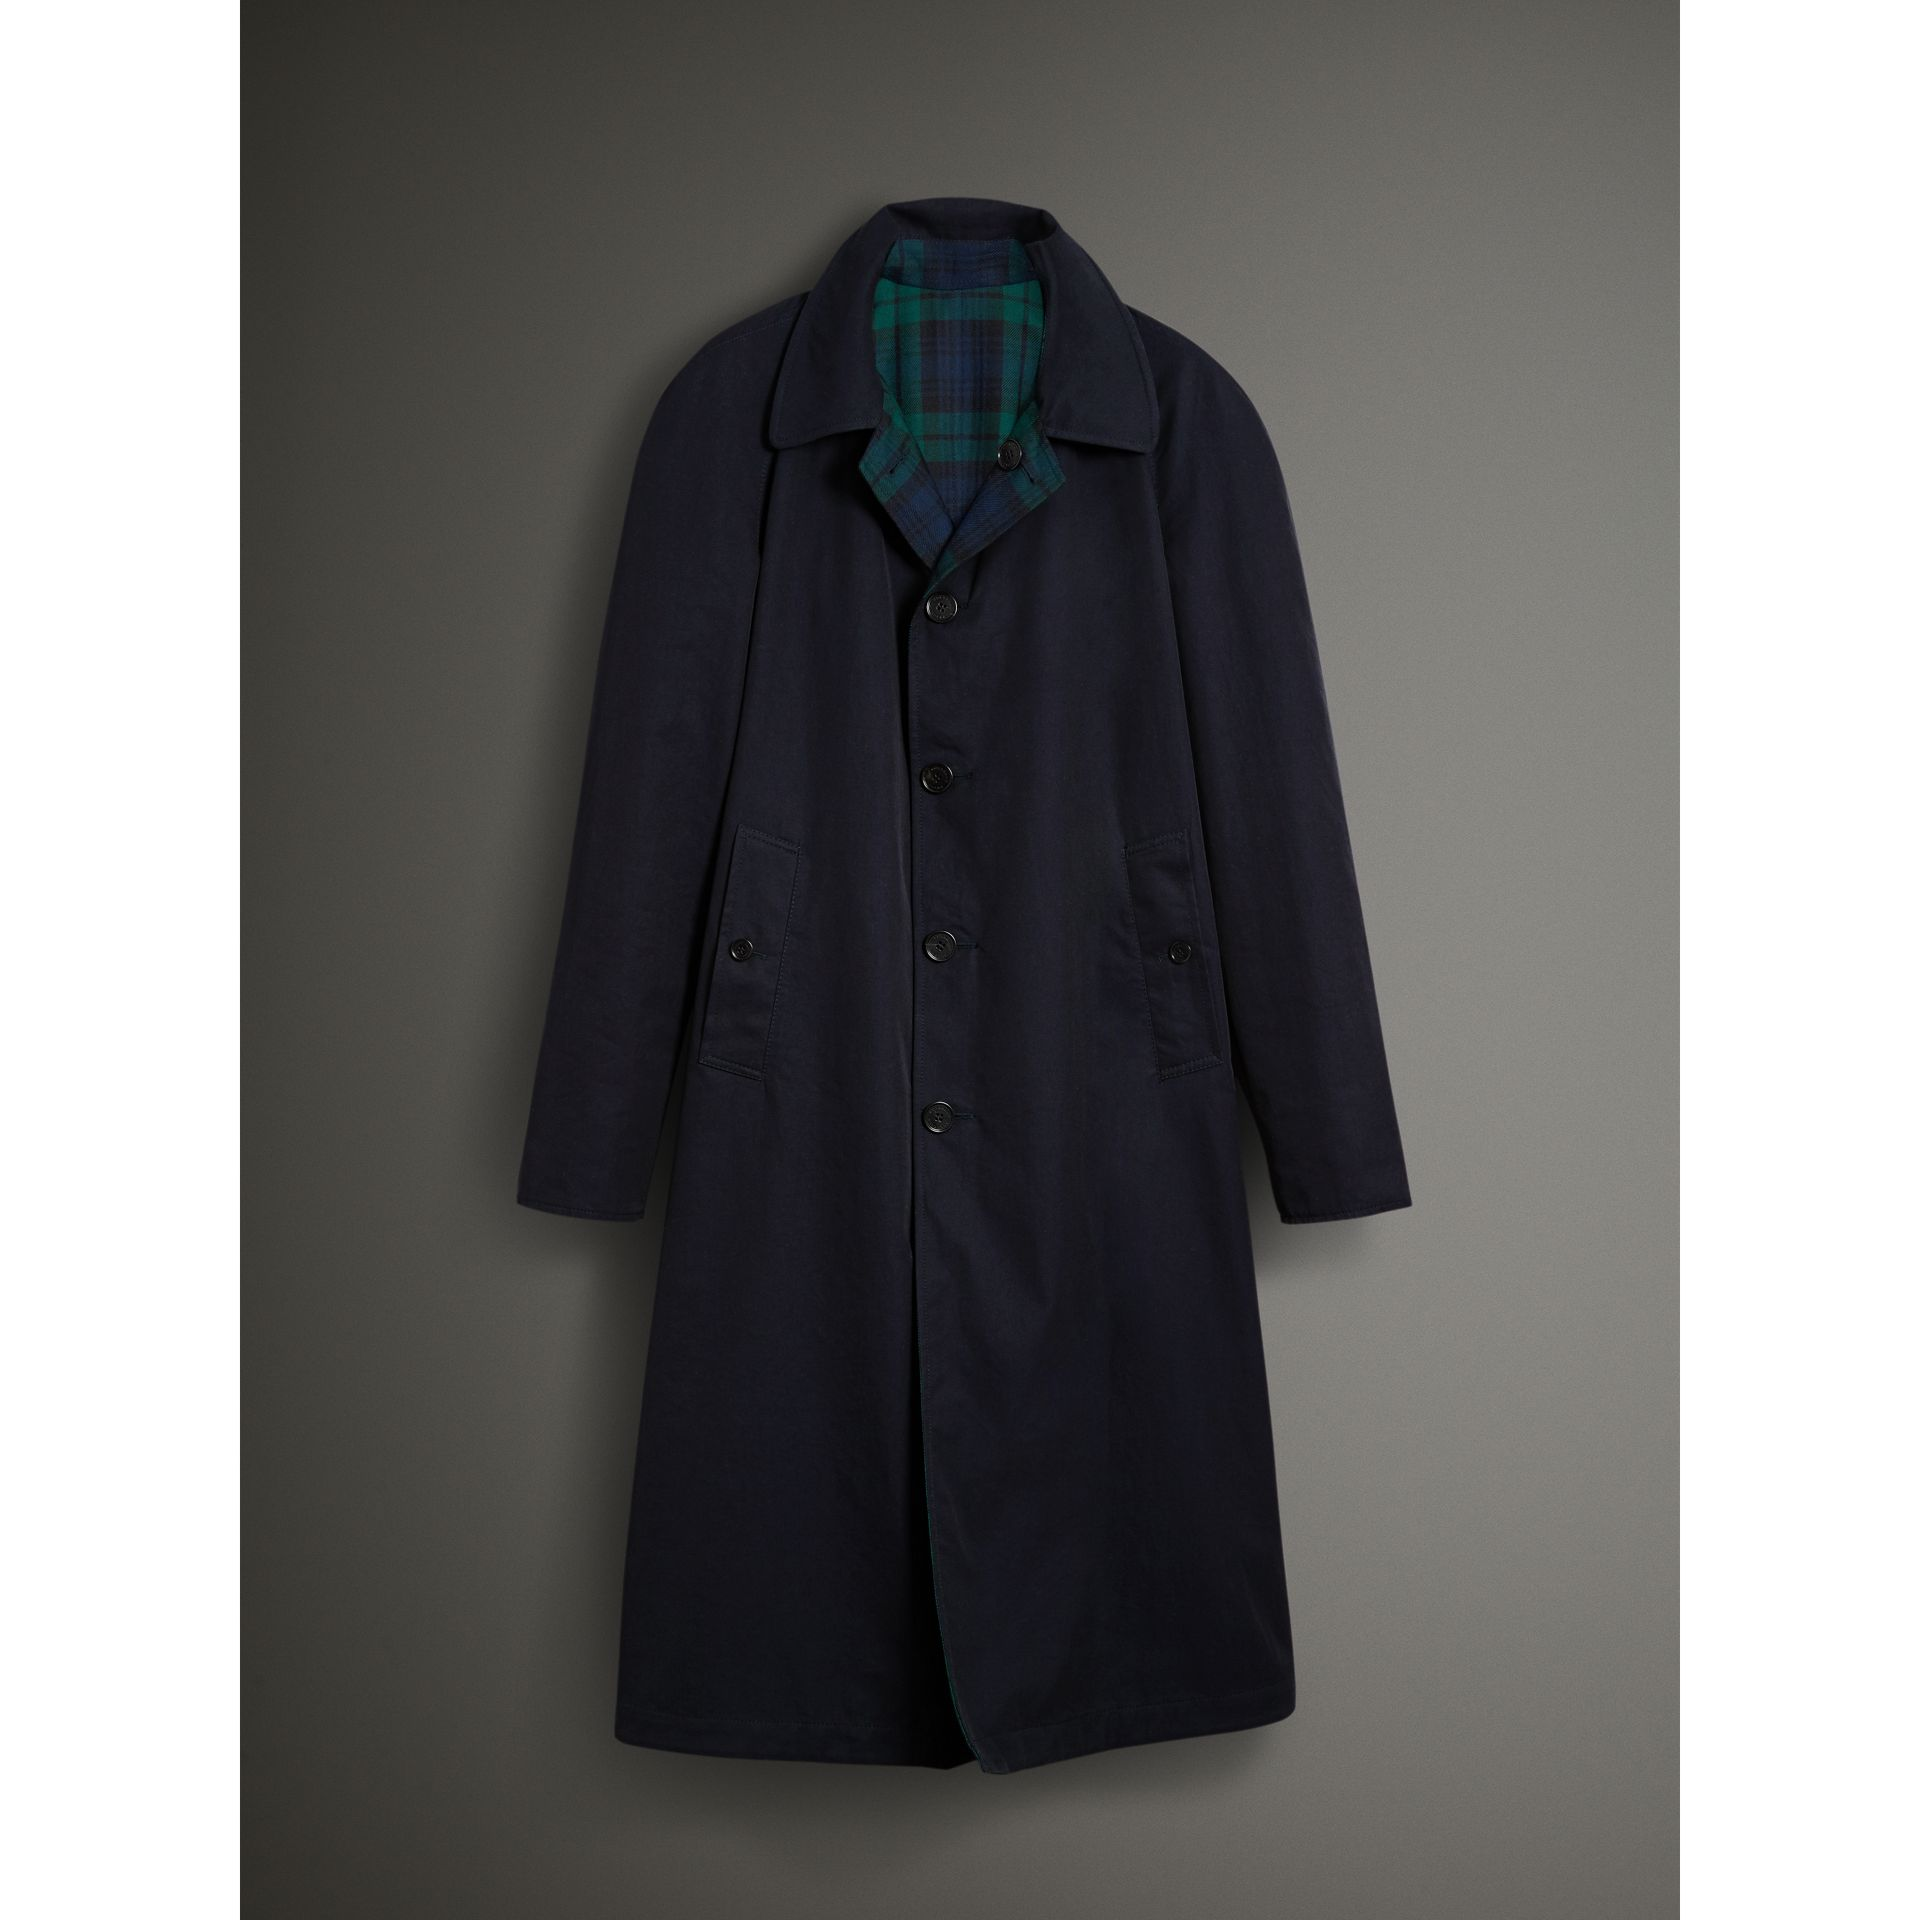 Reversible Tartan Wool and Cotton Gabardine Car Coat in Navy - Men | Burberry - gallery image 9